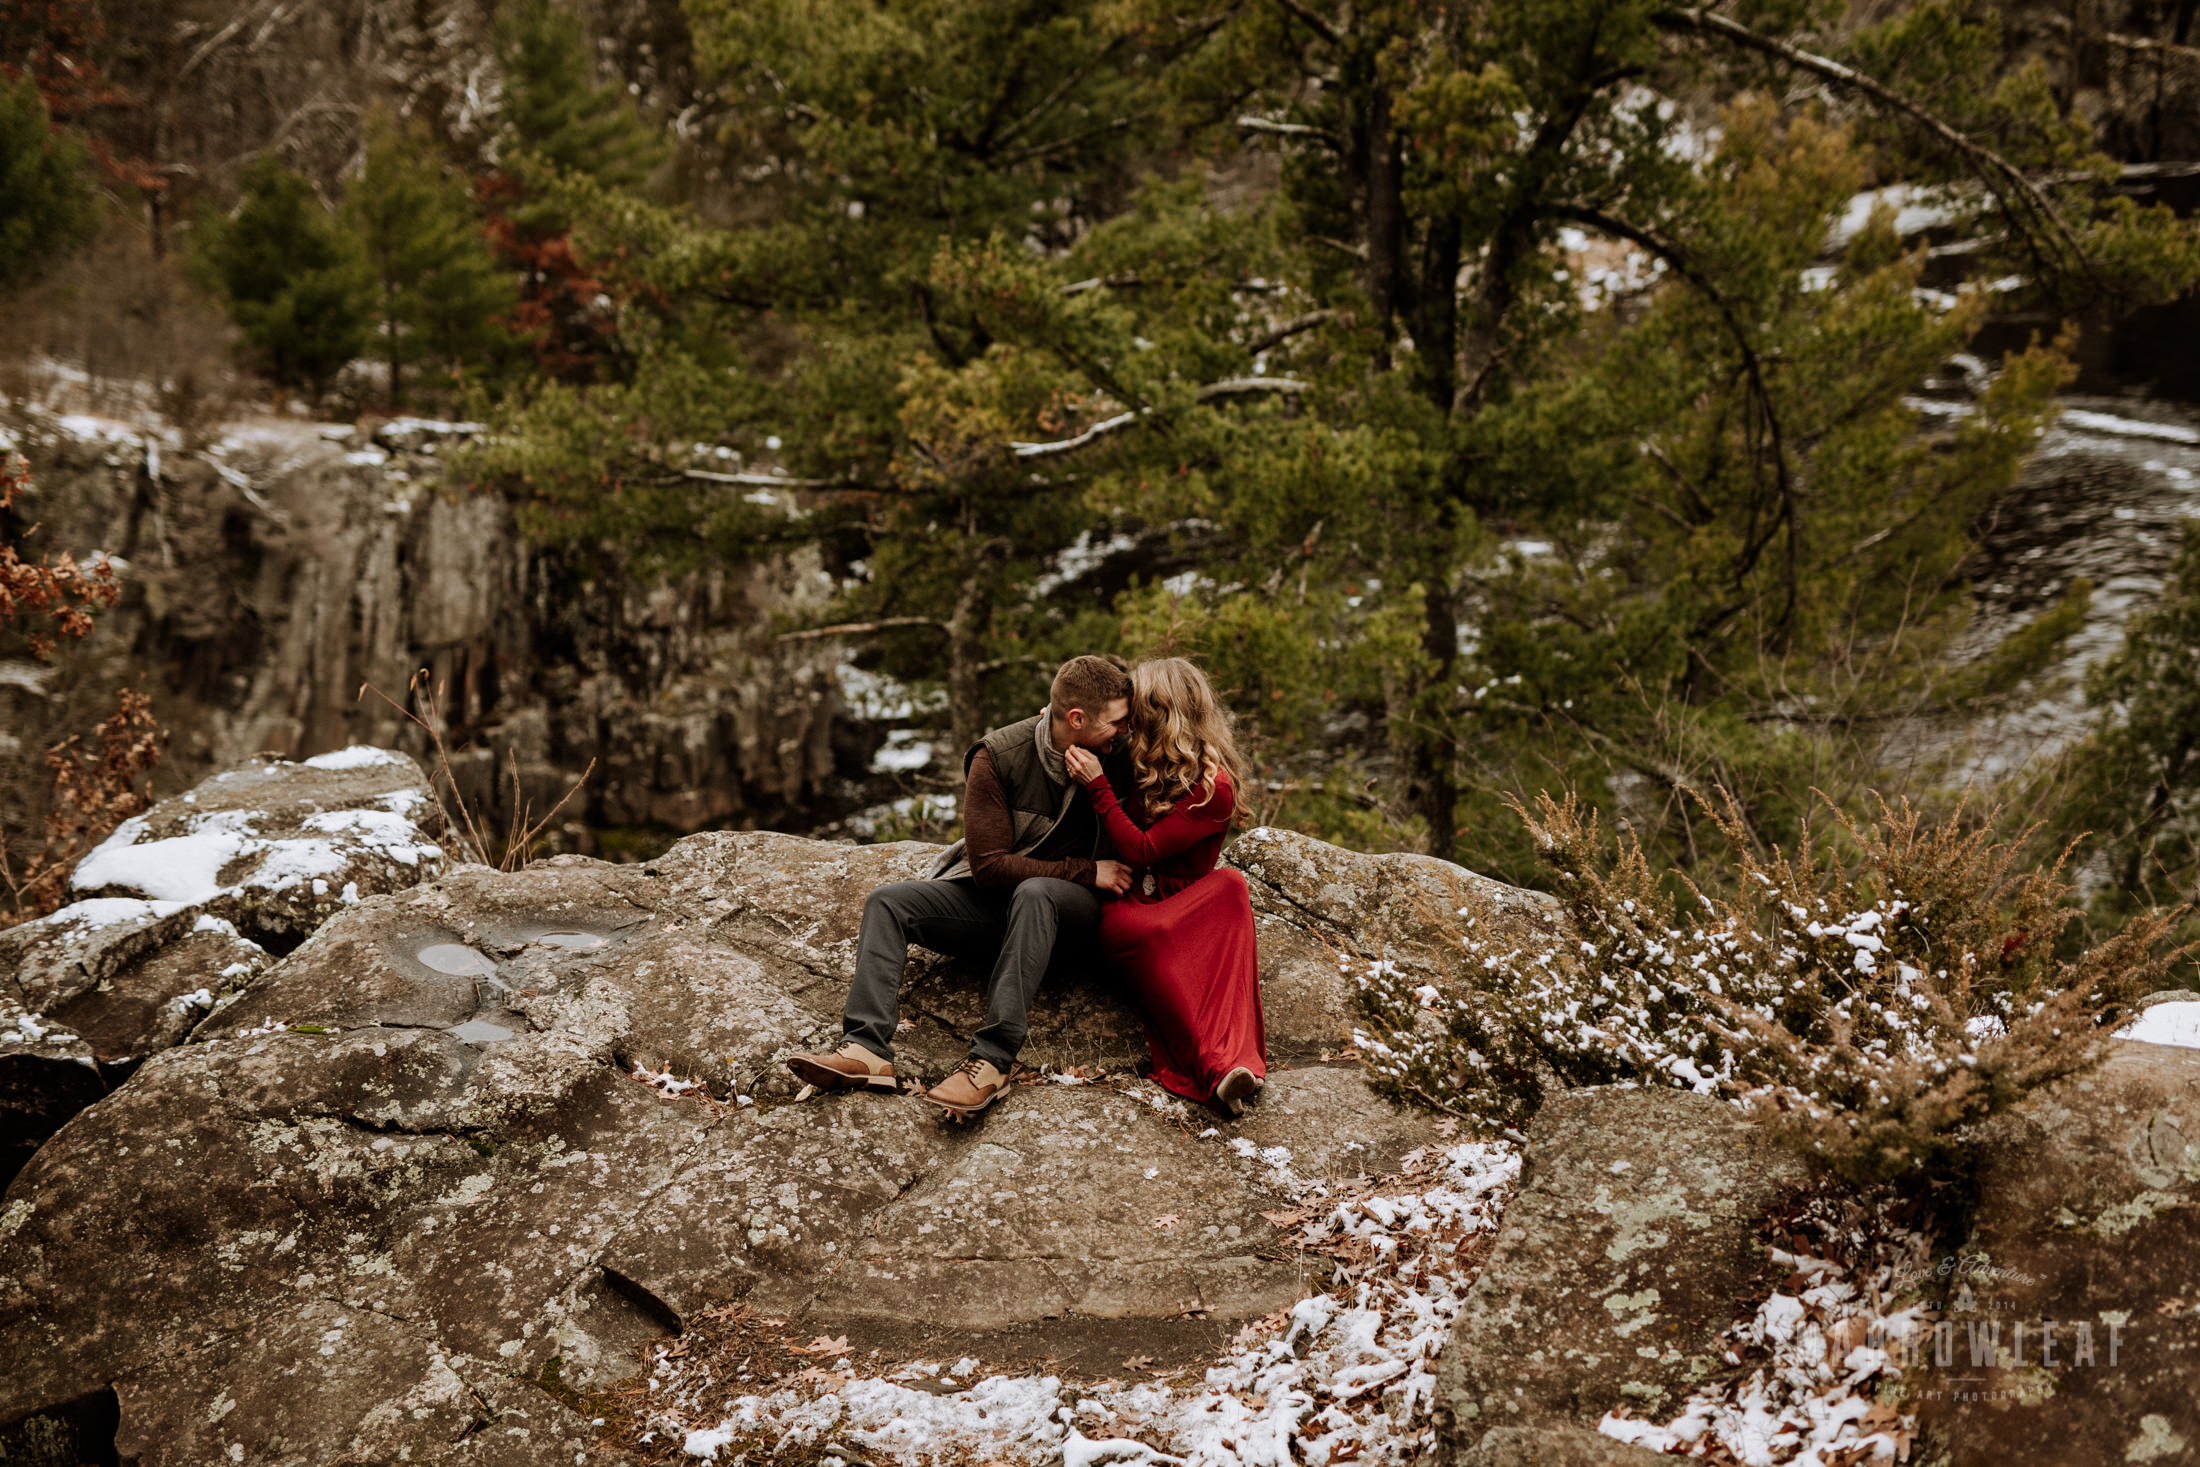 wisconsin-winter-adventure-engagement-interstate-park-bluffs-Narrowleaf_Love_and_Adventure_Photography-1696.jpg